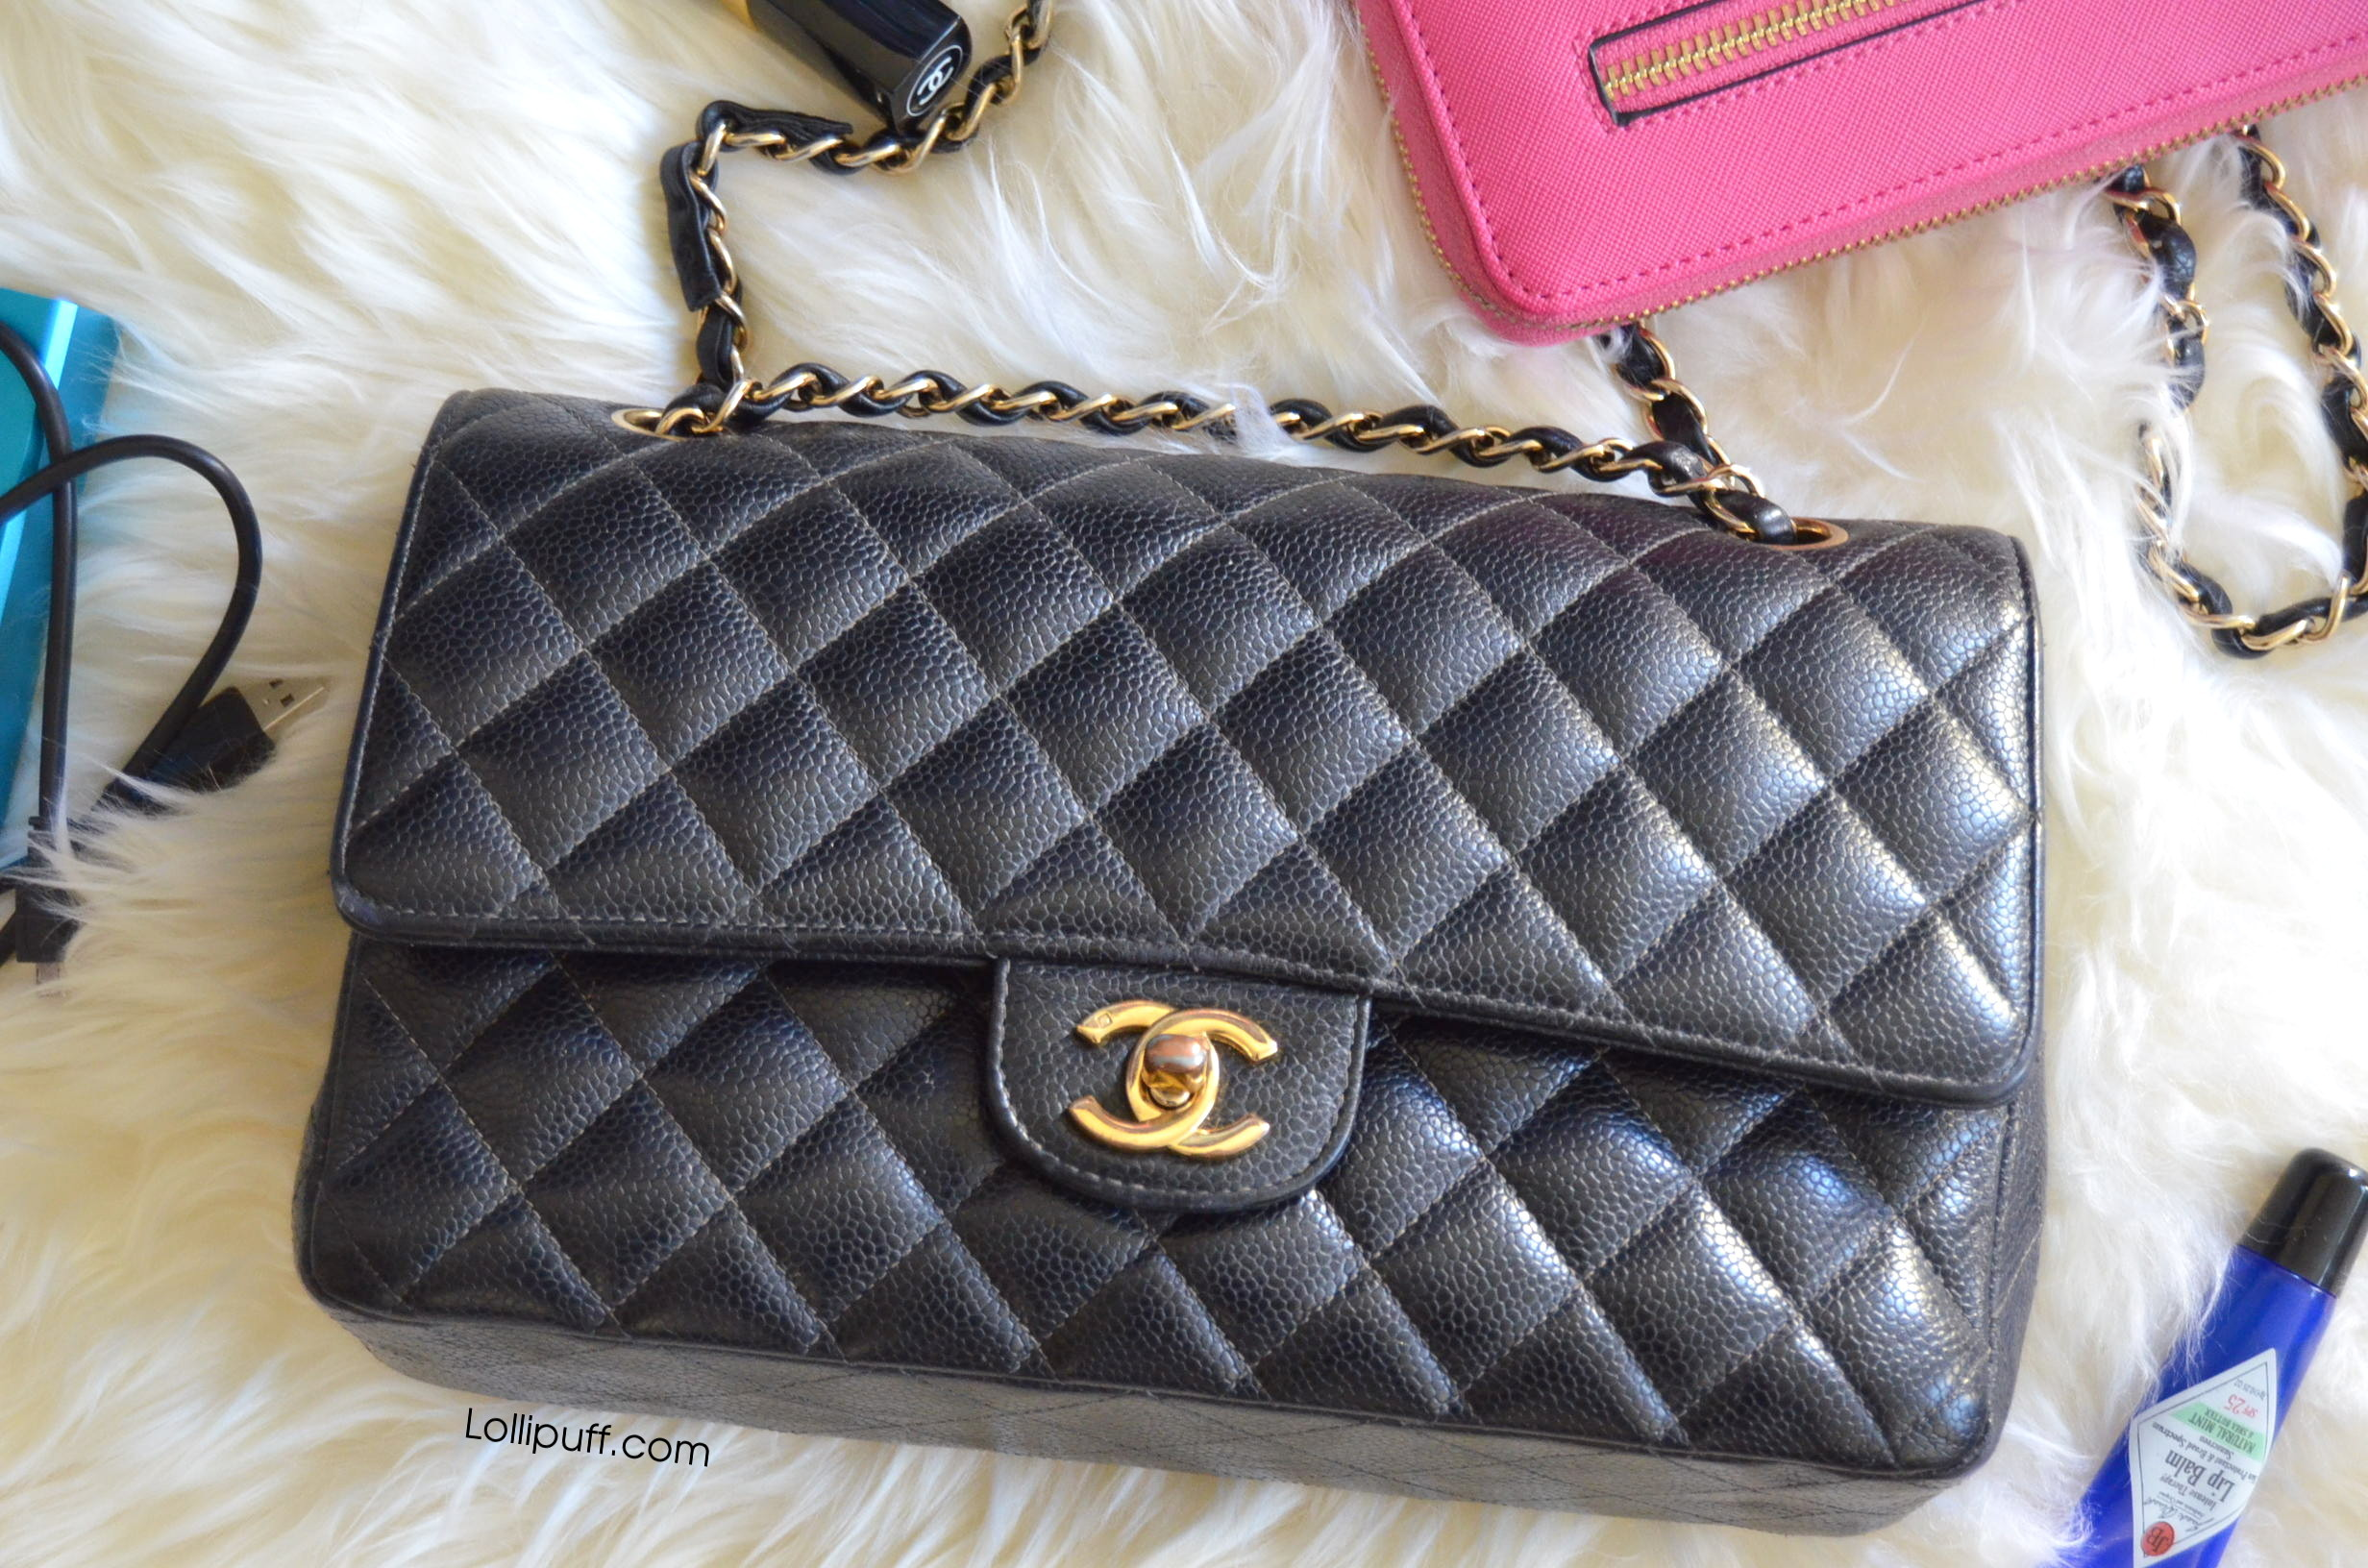 48212f9948f0 Inside a Medium Classic Chanel Double Flap Bag | Lollipuff